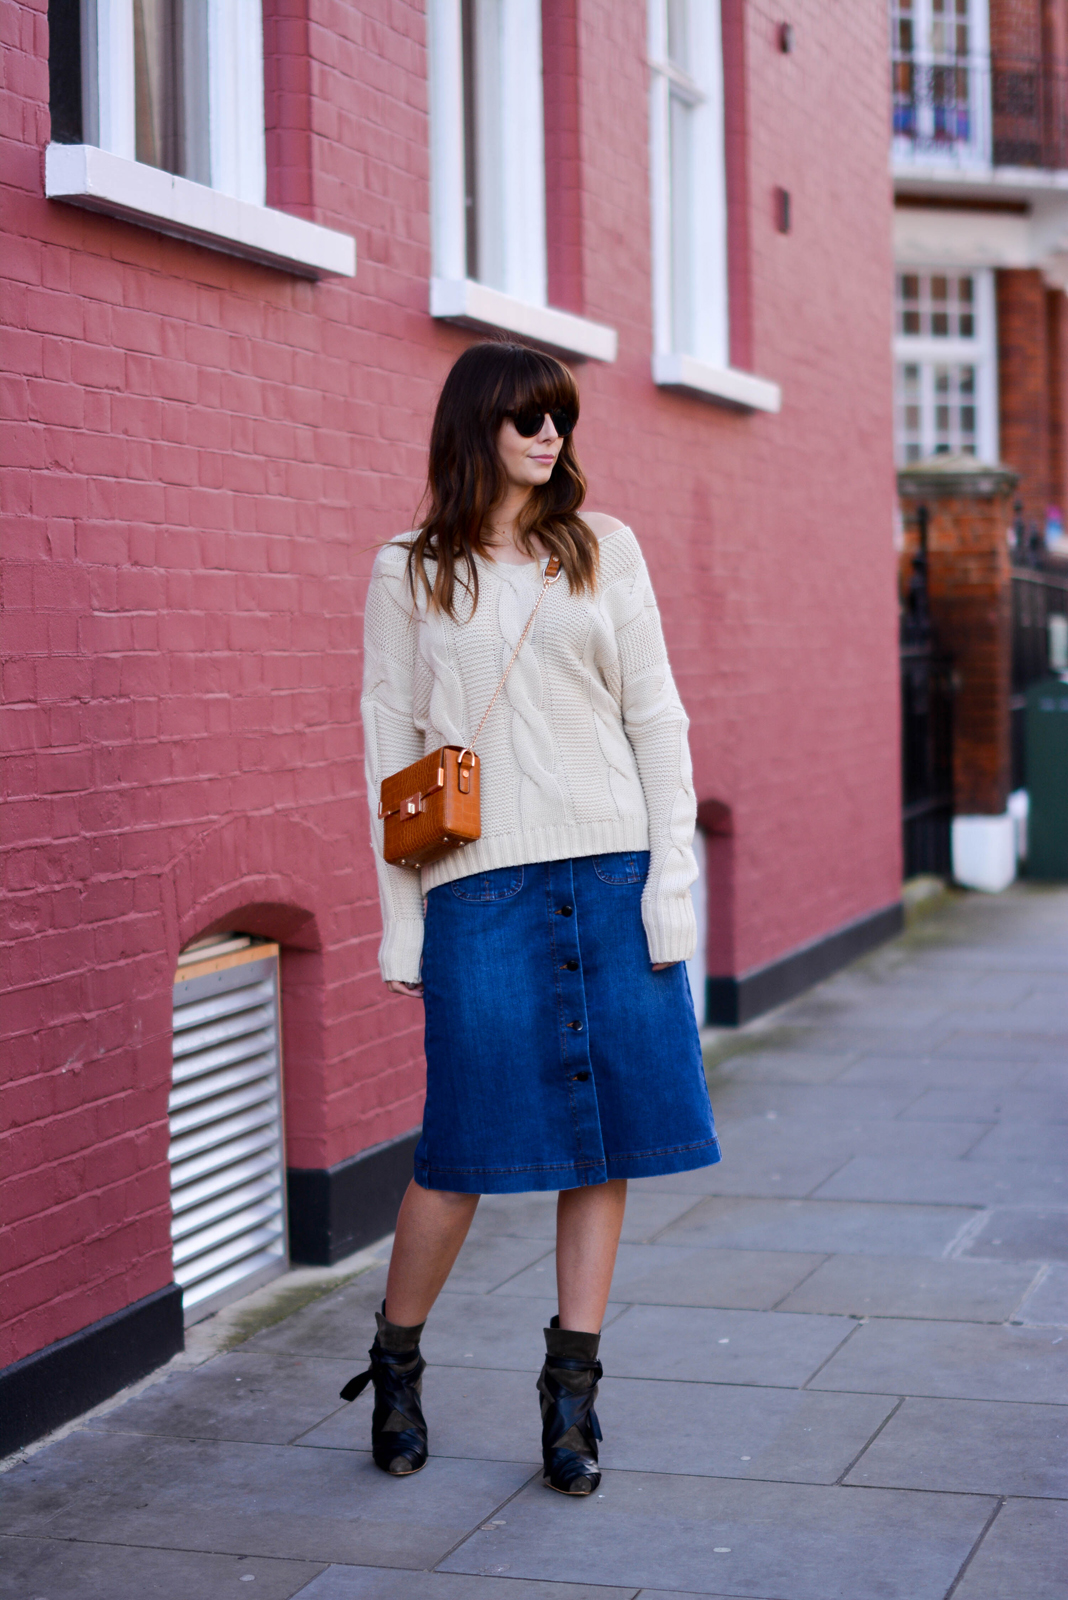 EJSTYLE - Emma Hill, 70's style, london street style, LFW AW15, M&S denim a line skirt, off shoulder cable knit jumper, isabel marant khaki ankle boots, Dune box bag tan